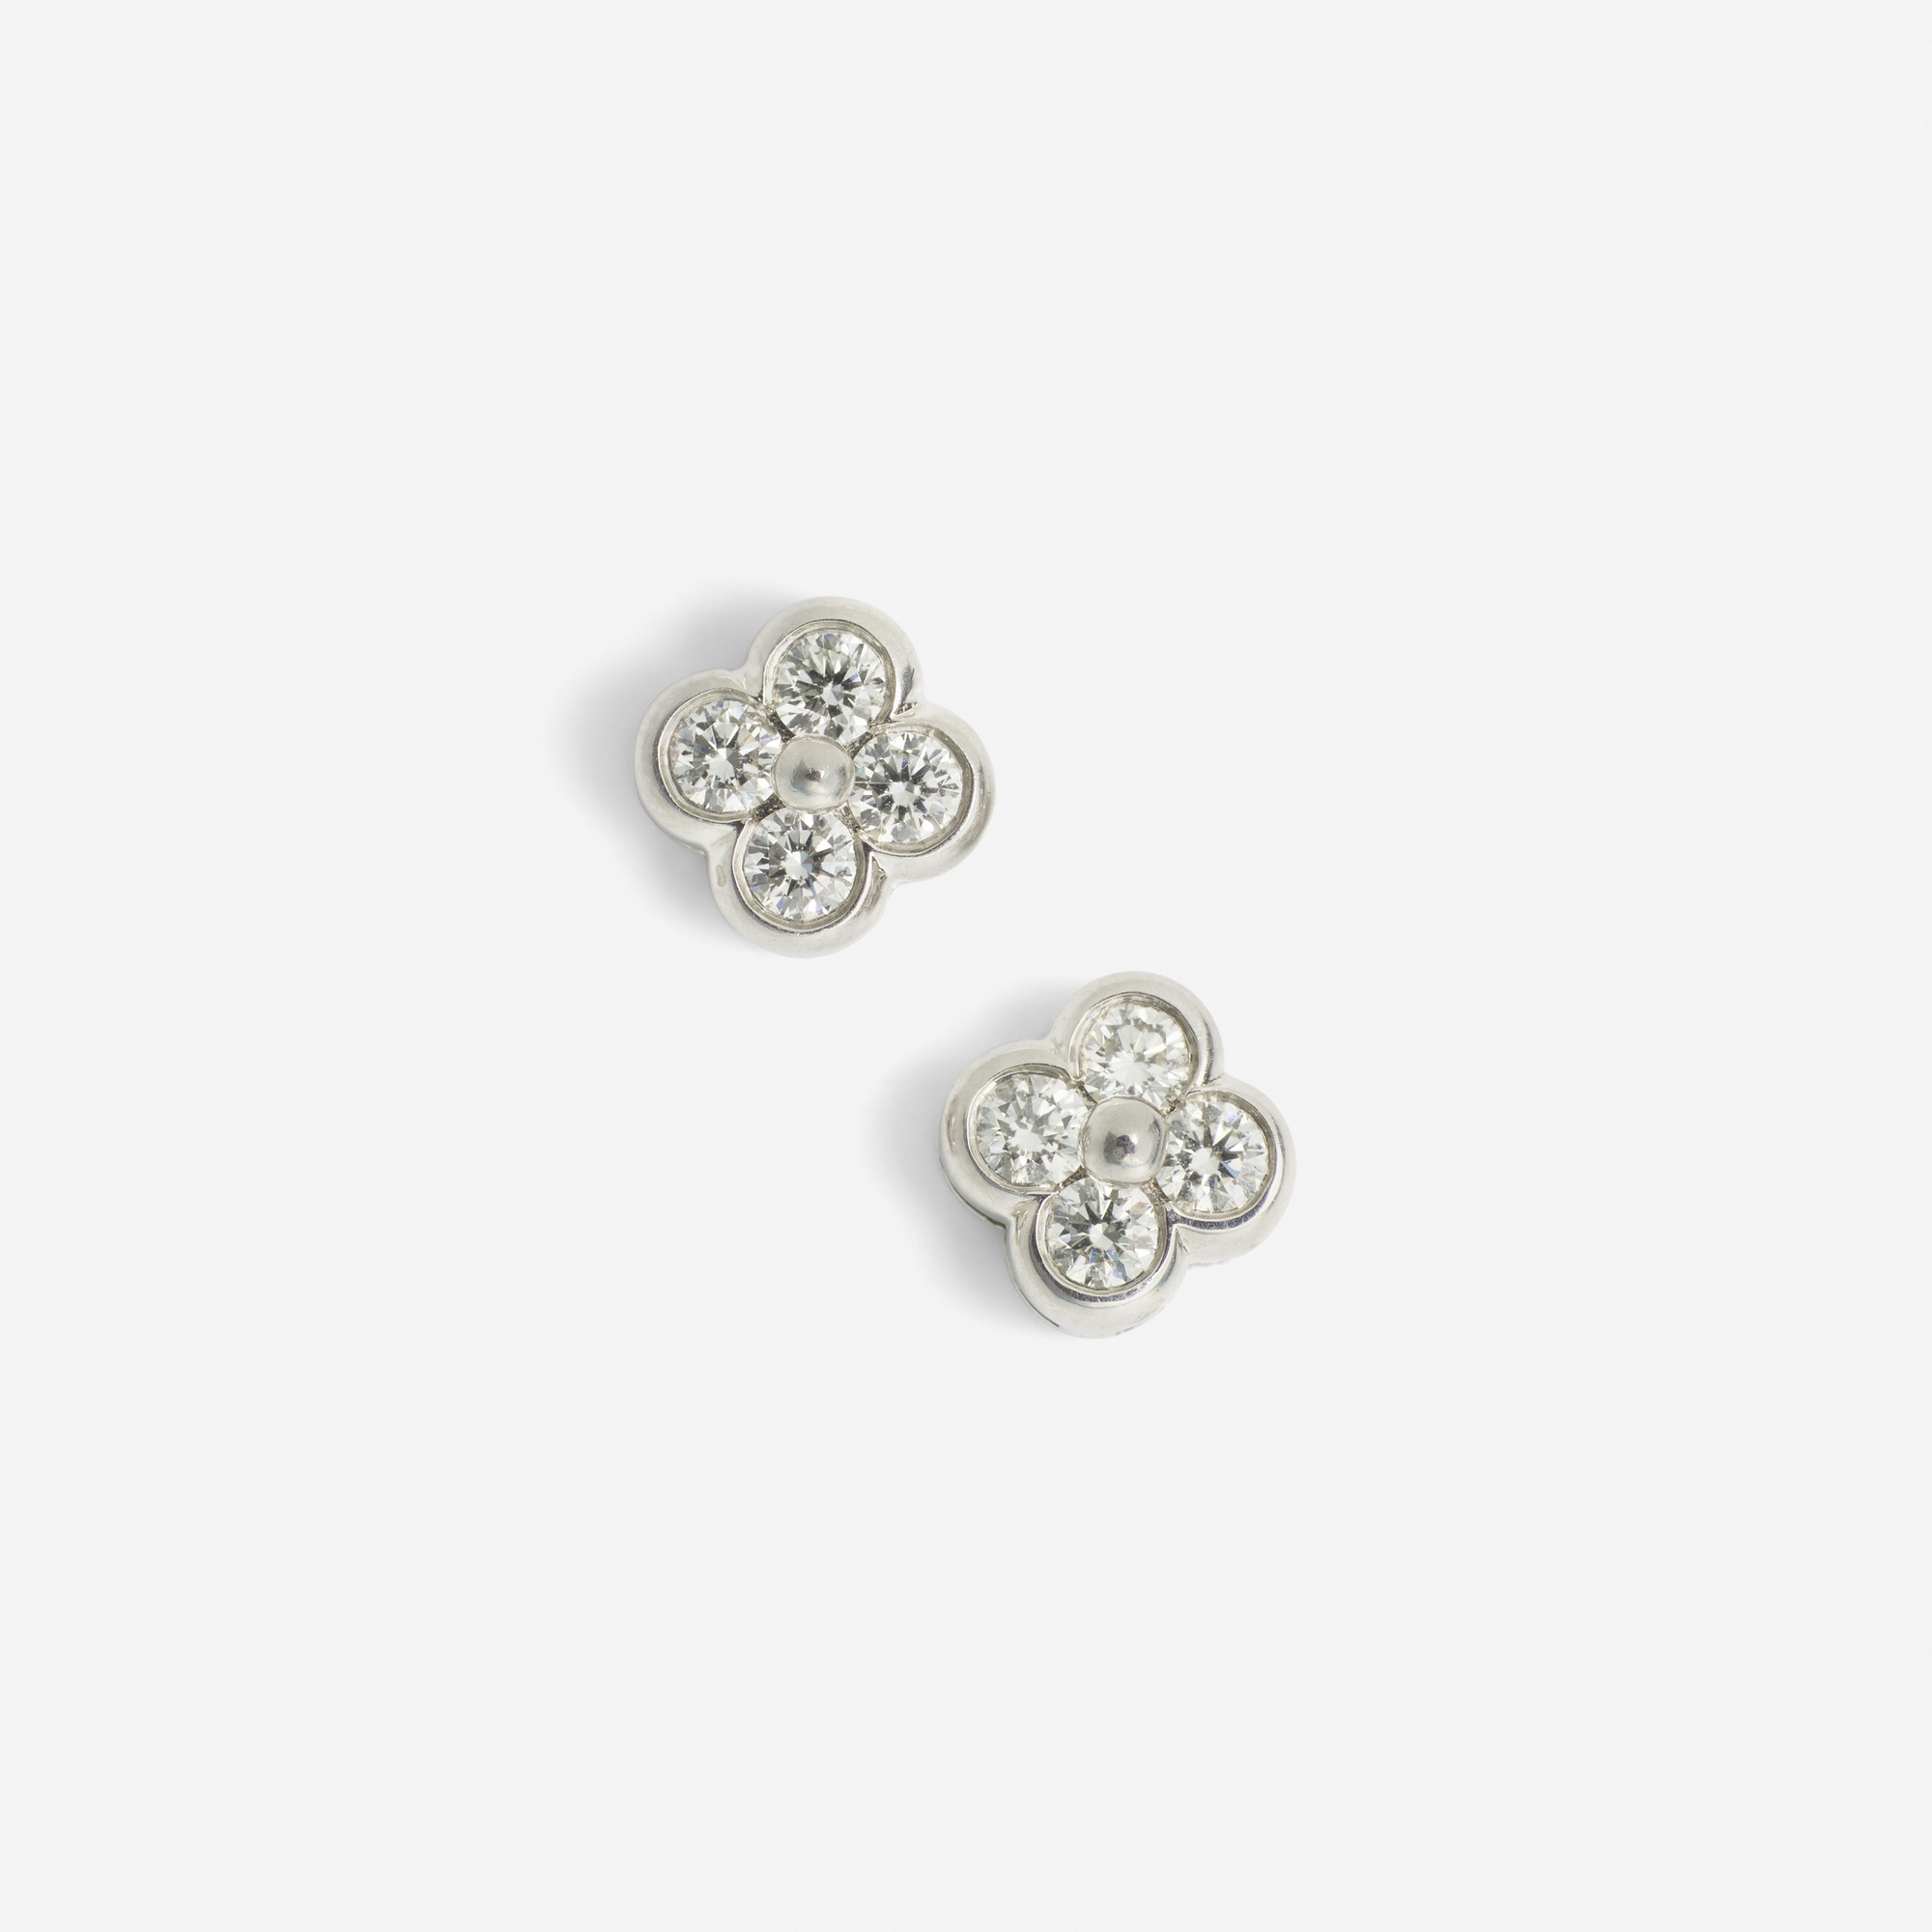 115: Tiffany & Co. / A pair of platinum and diamond earrings (1 of 1)